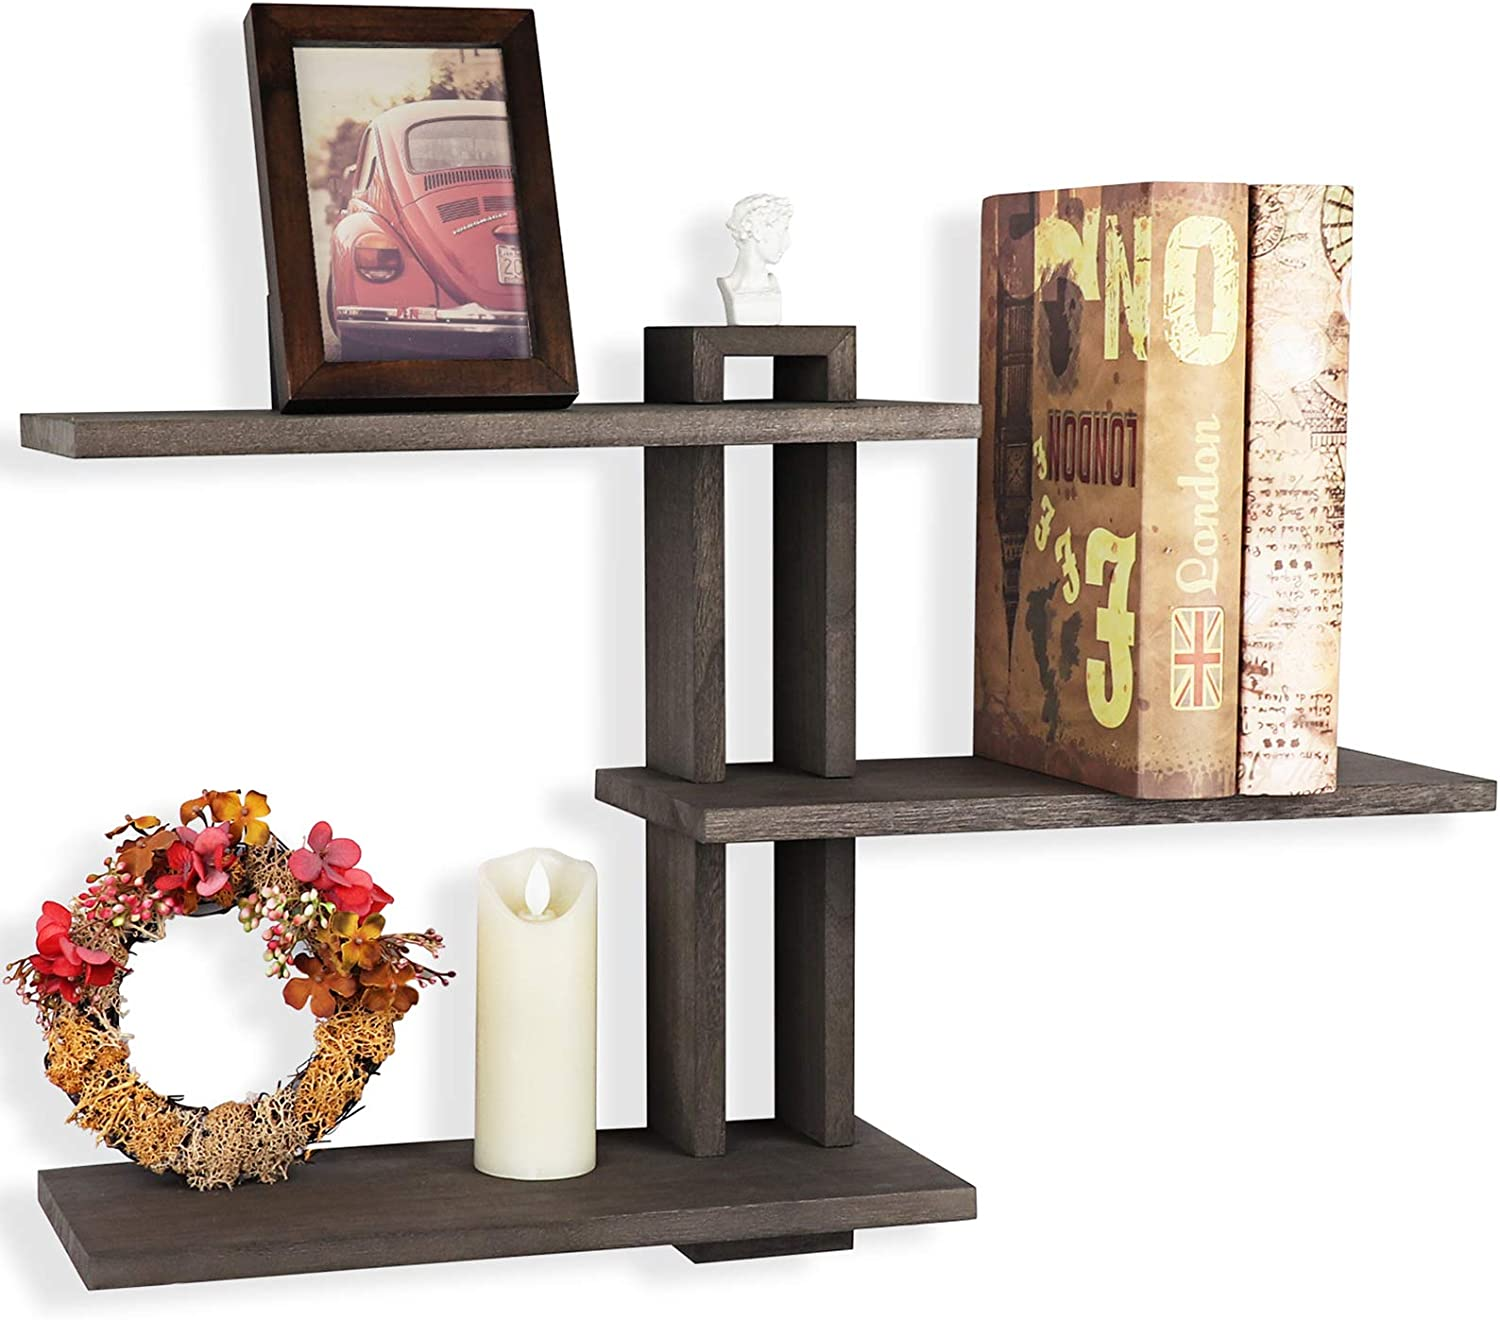 Emfogo Floating Shelves Wall Mounted Rustic Wall Wood Shelves 3 Tier for Decor and Storage at Bedroom Living Room Office Weathered Grey